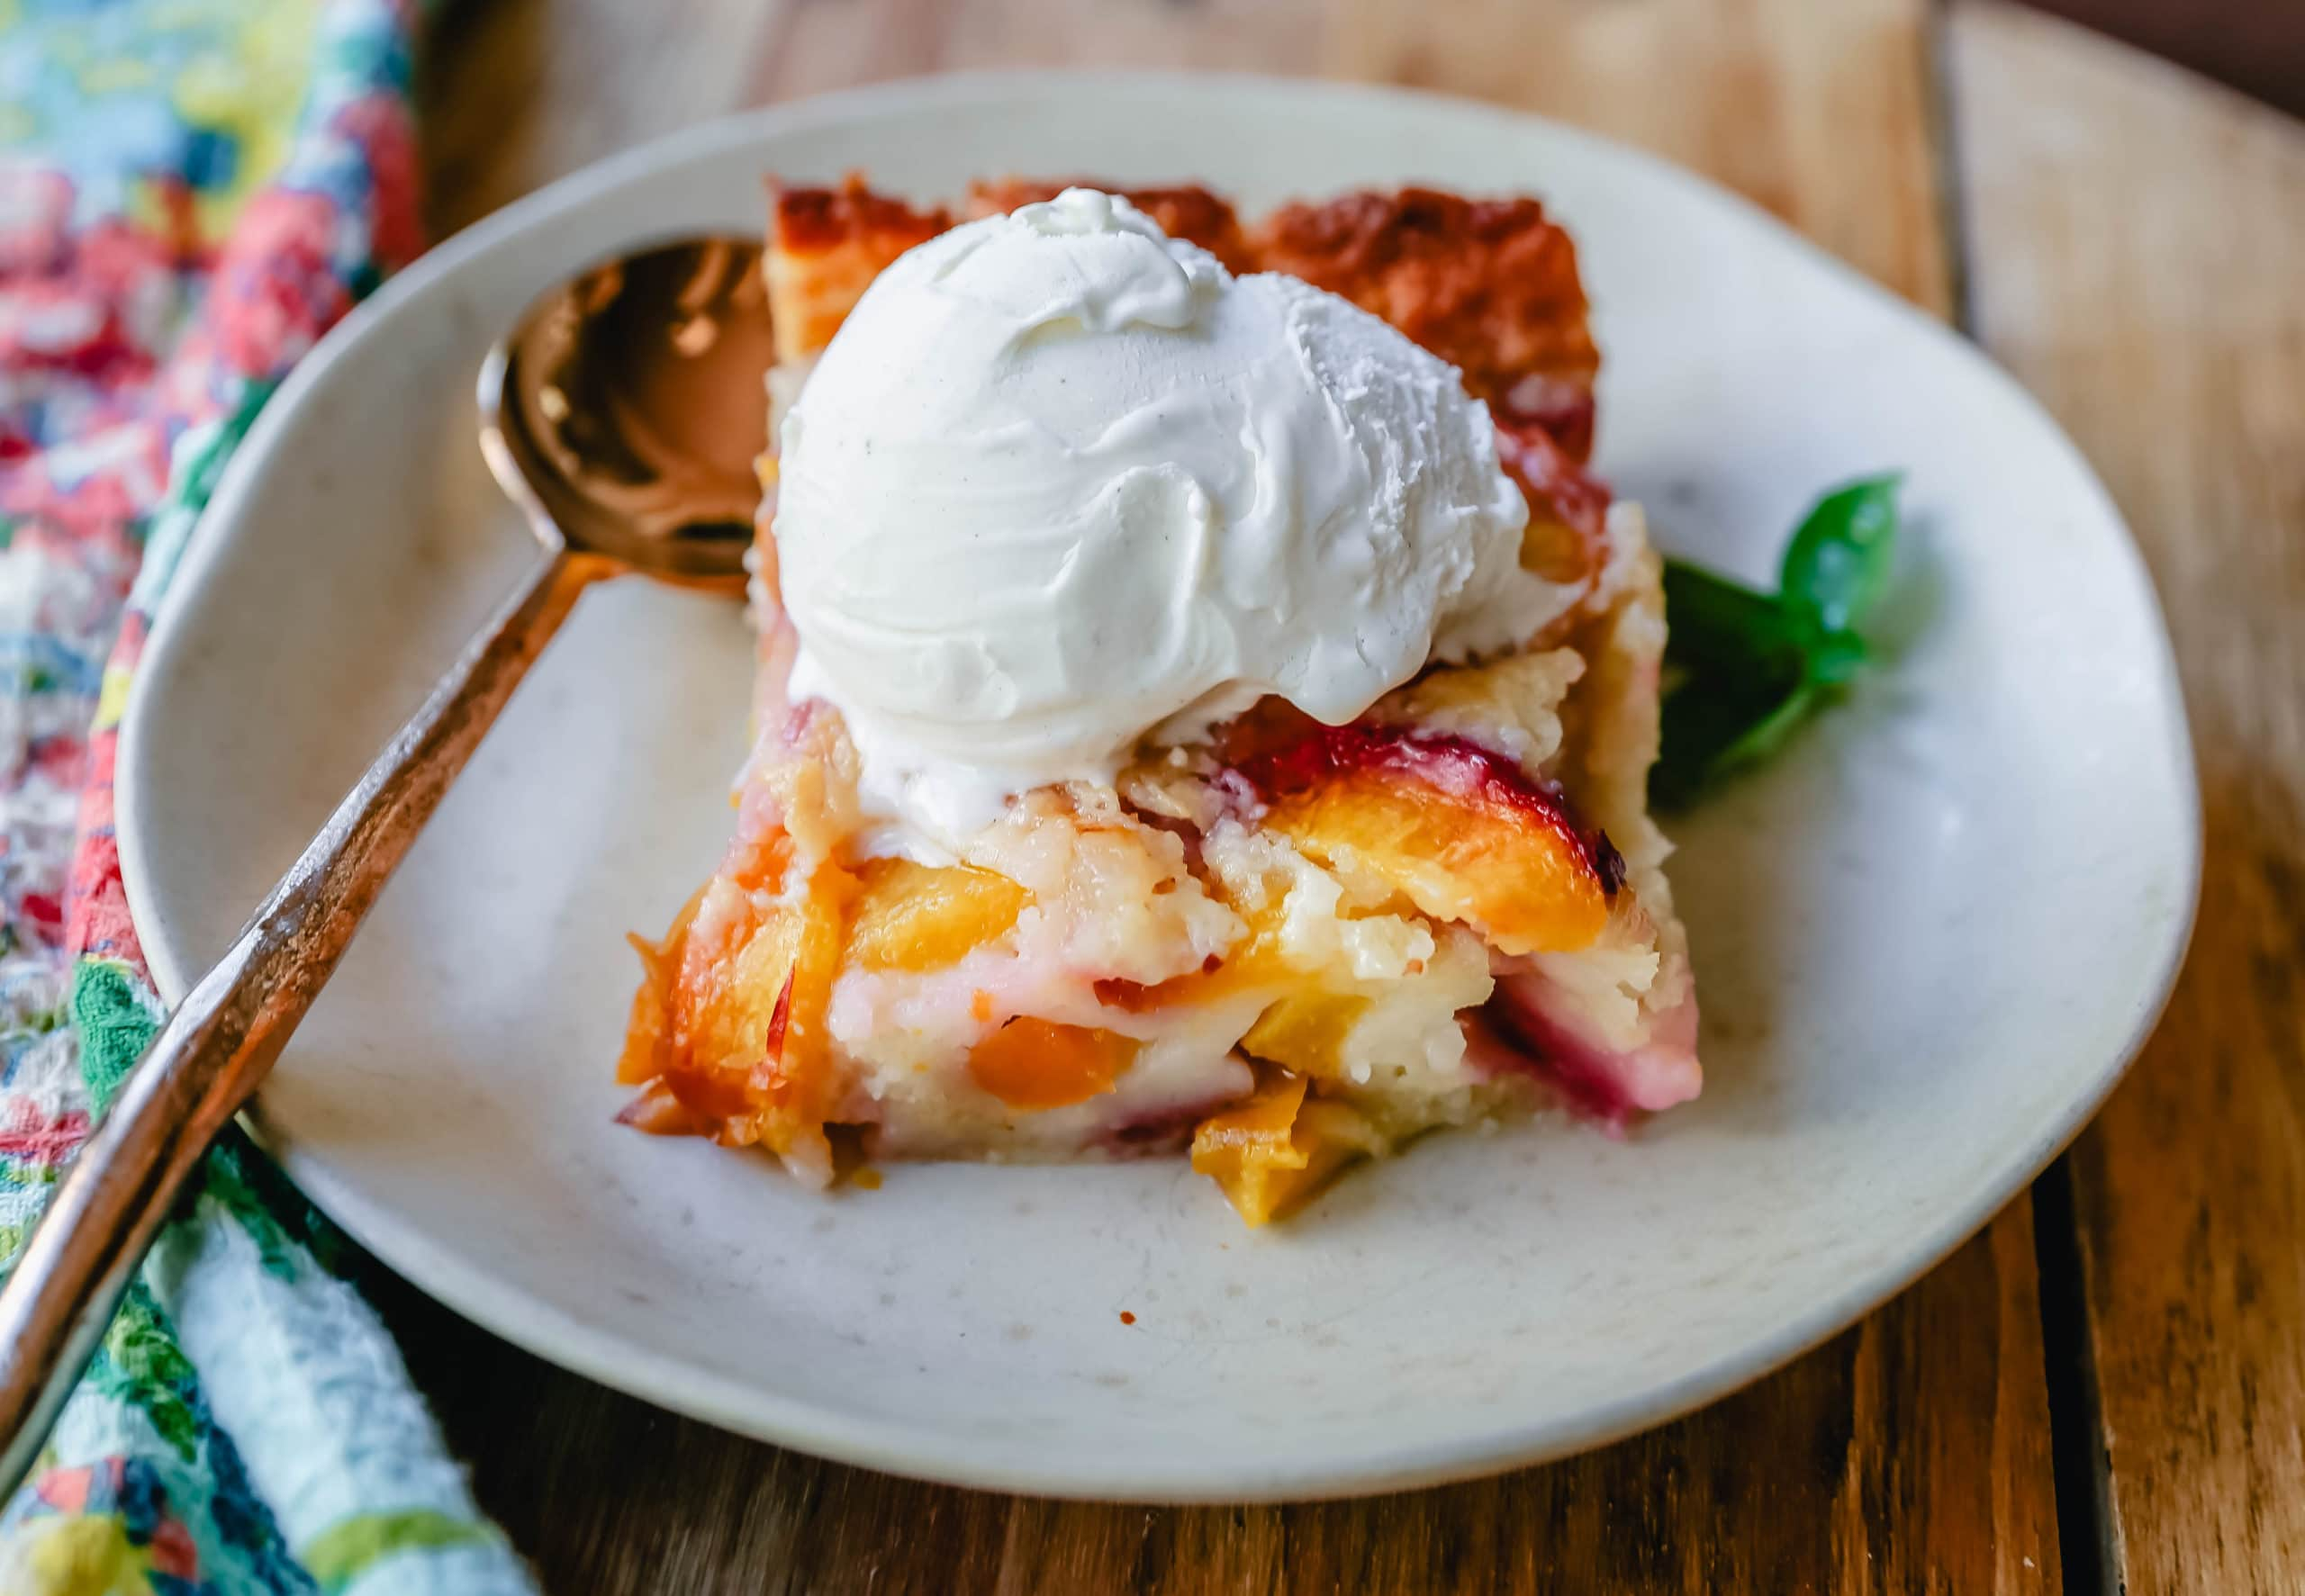 Texas Style Peach Cobbler. Fresh peaches sweetened with sugar and topped with a creamy buttery cake-like topping. A Texas favorite dessert! #peaches #peachdessert #peachcobbler